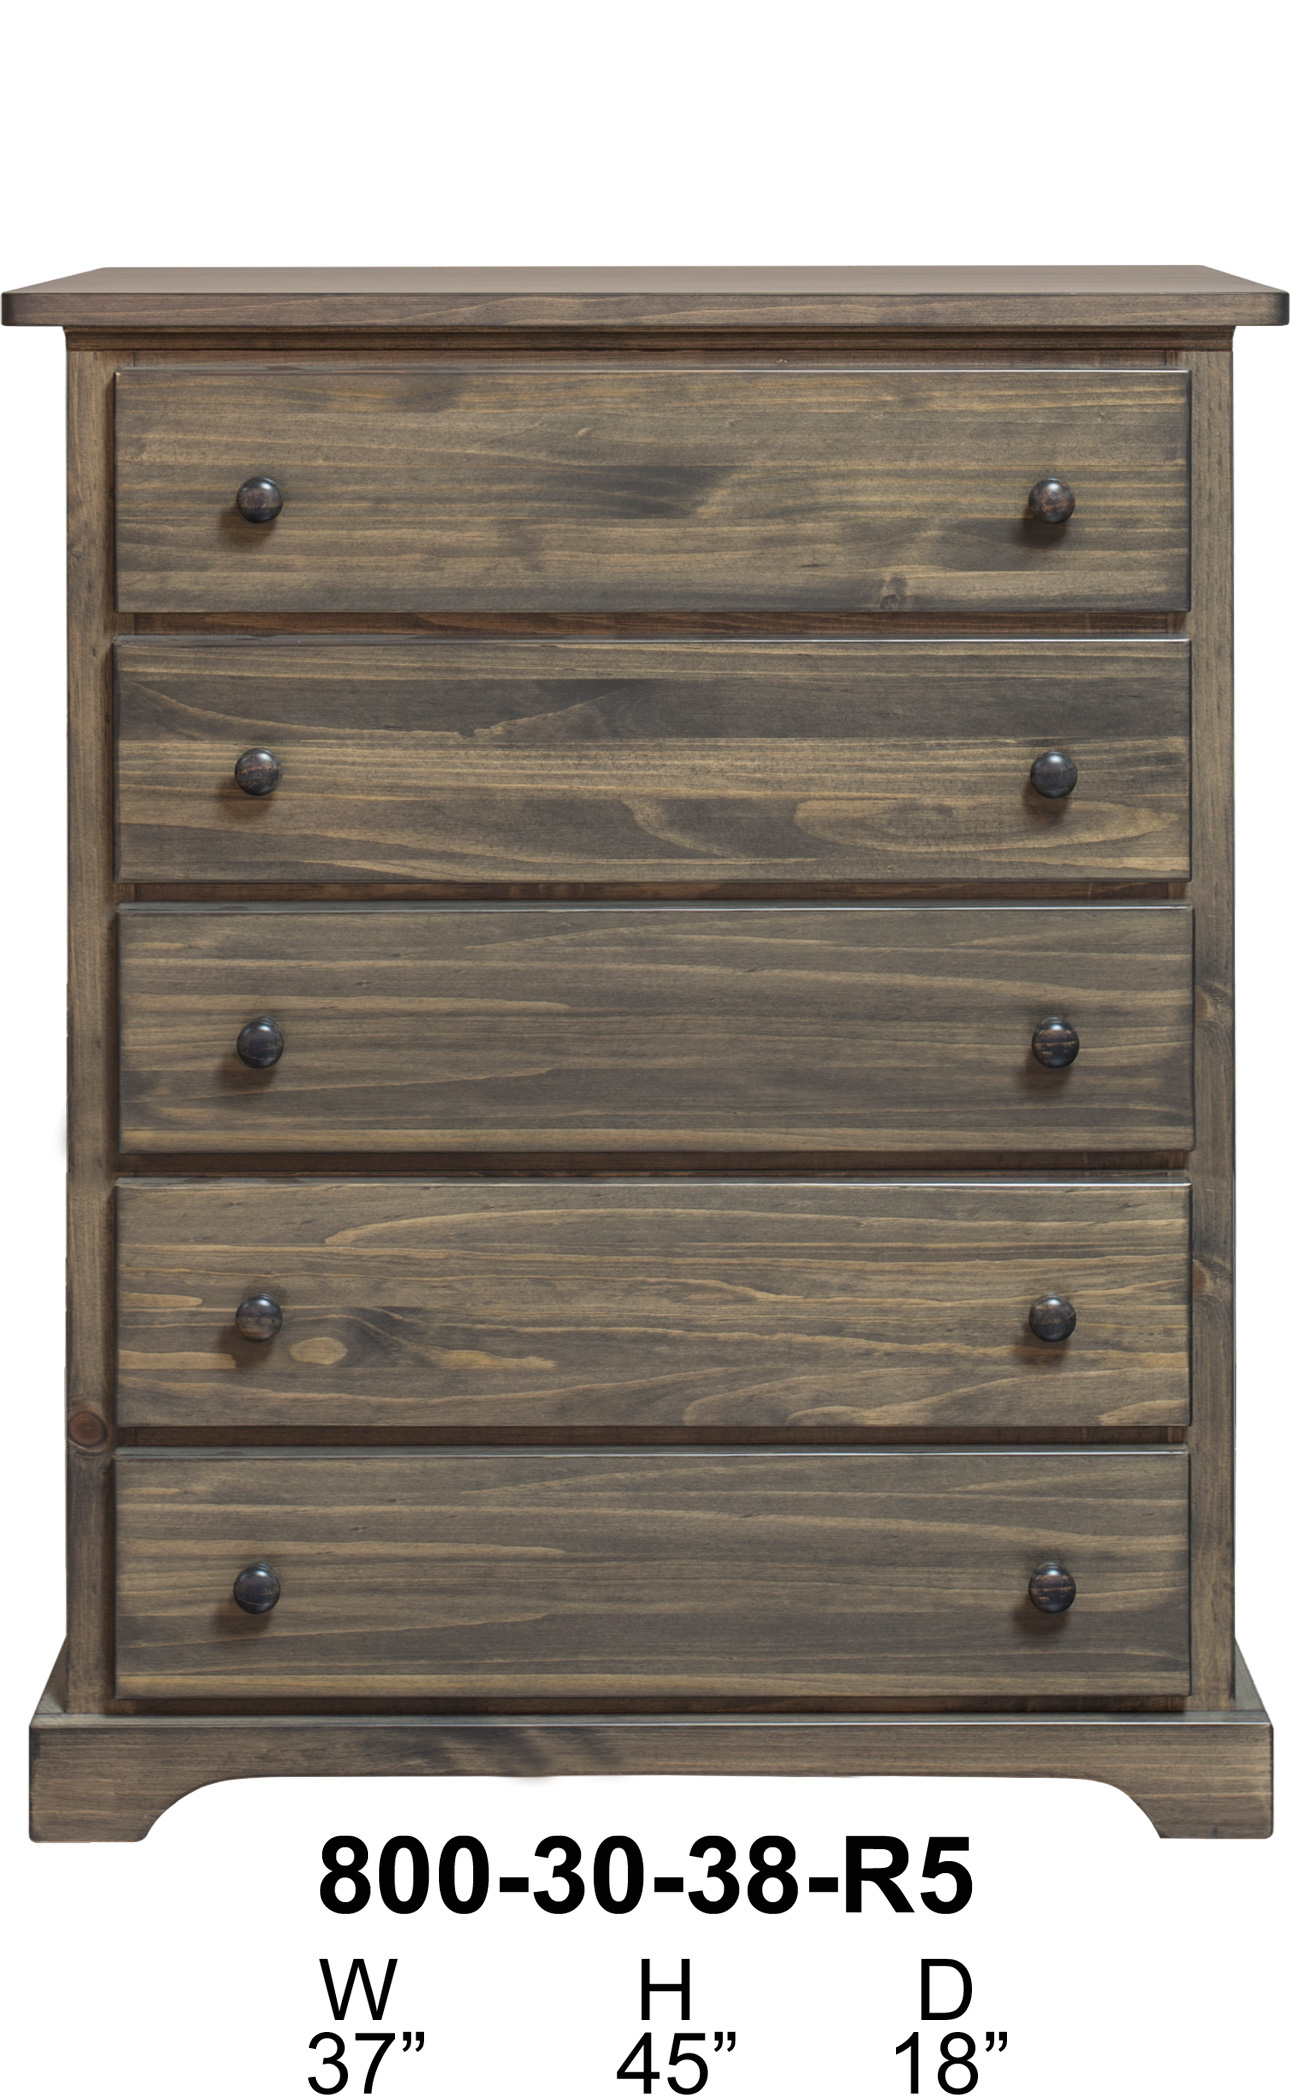 Wide Chests With Deep Drawers. Polo Dresser